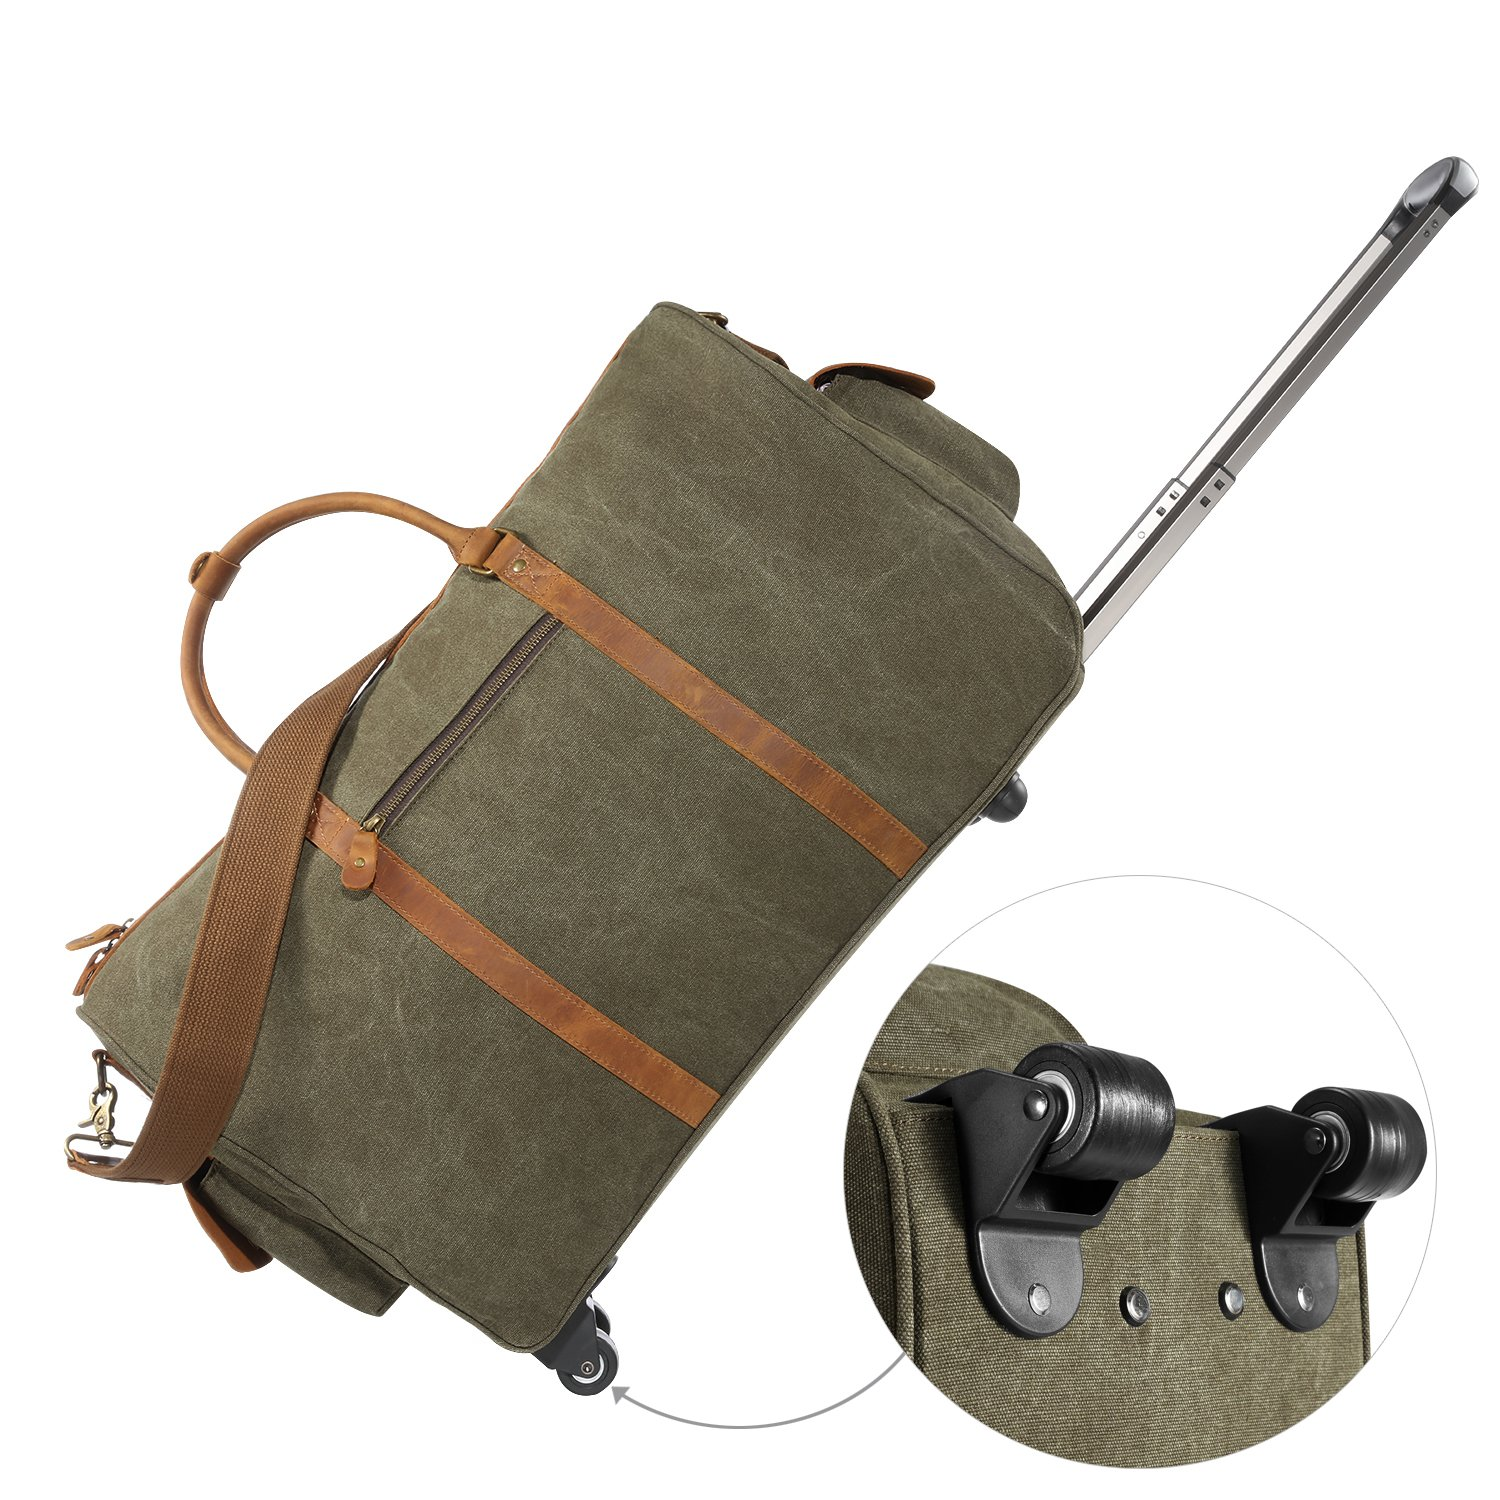 Kattee Rolling Duffle Bag with Wheels Canvas Travel Luggage Duffel Bag 50L (Army Green) by Kattee (Image #2)